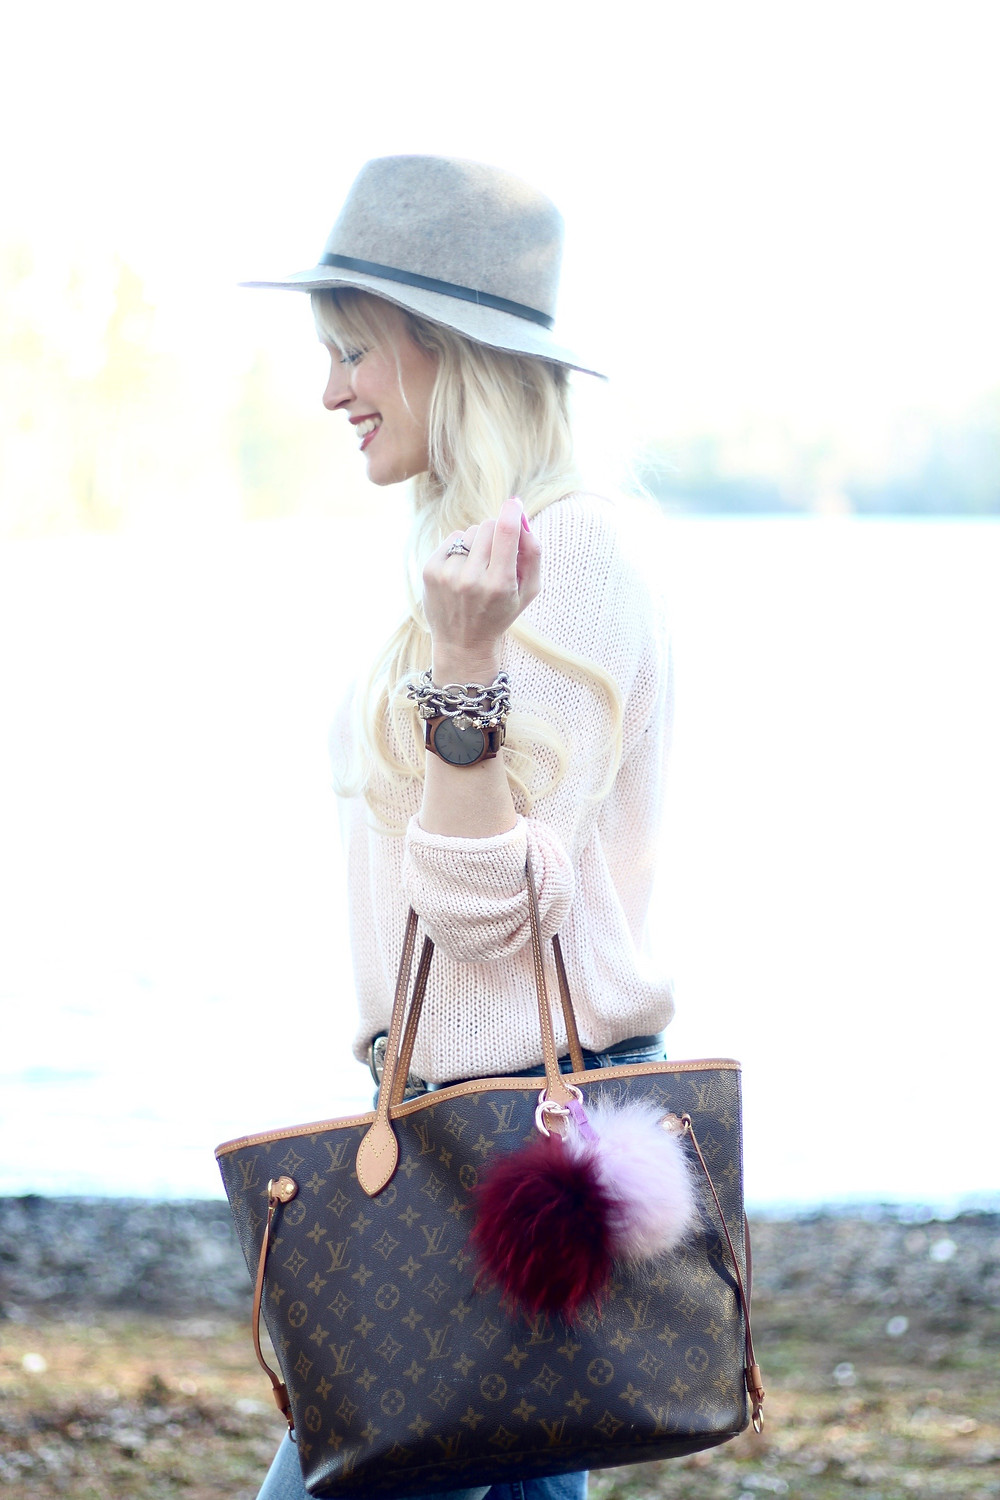 A young mom carries her Louis Vuitton diaper bag with colorful pom pom charms with her JORD Wood Watch on her wrist.